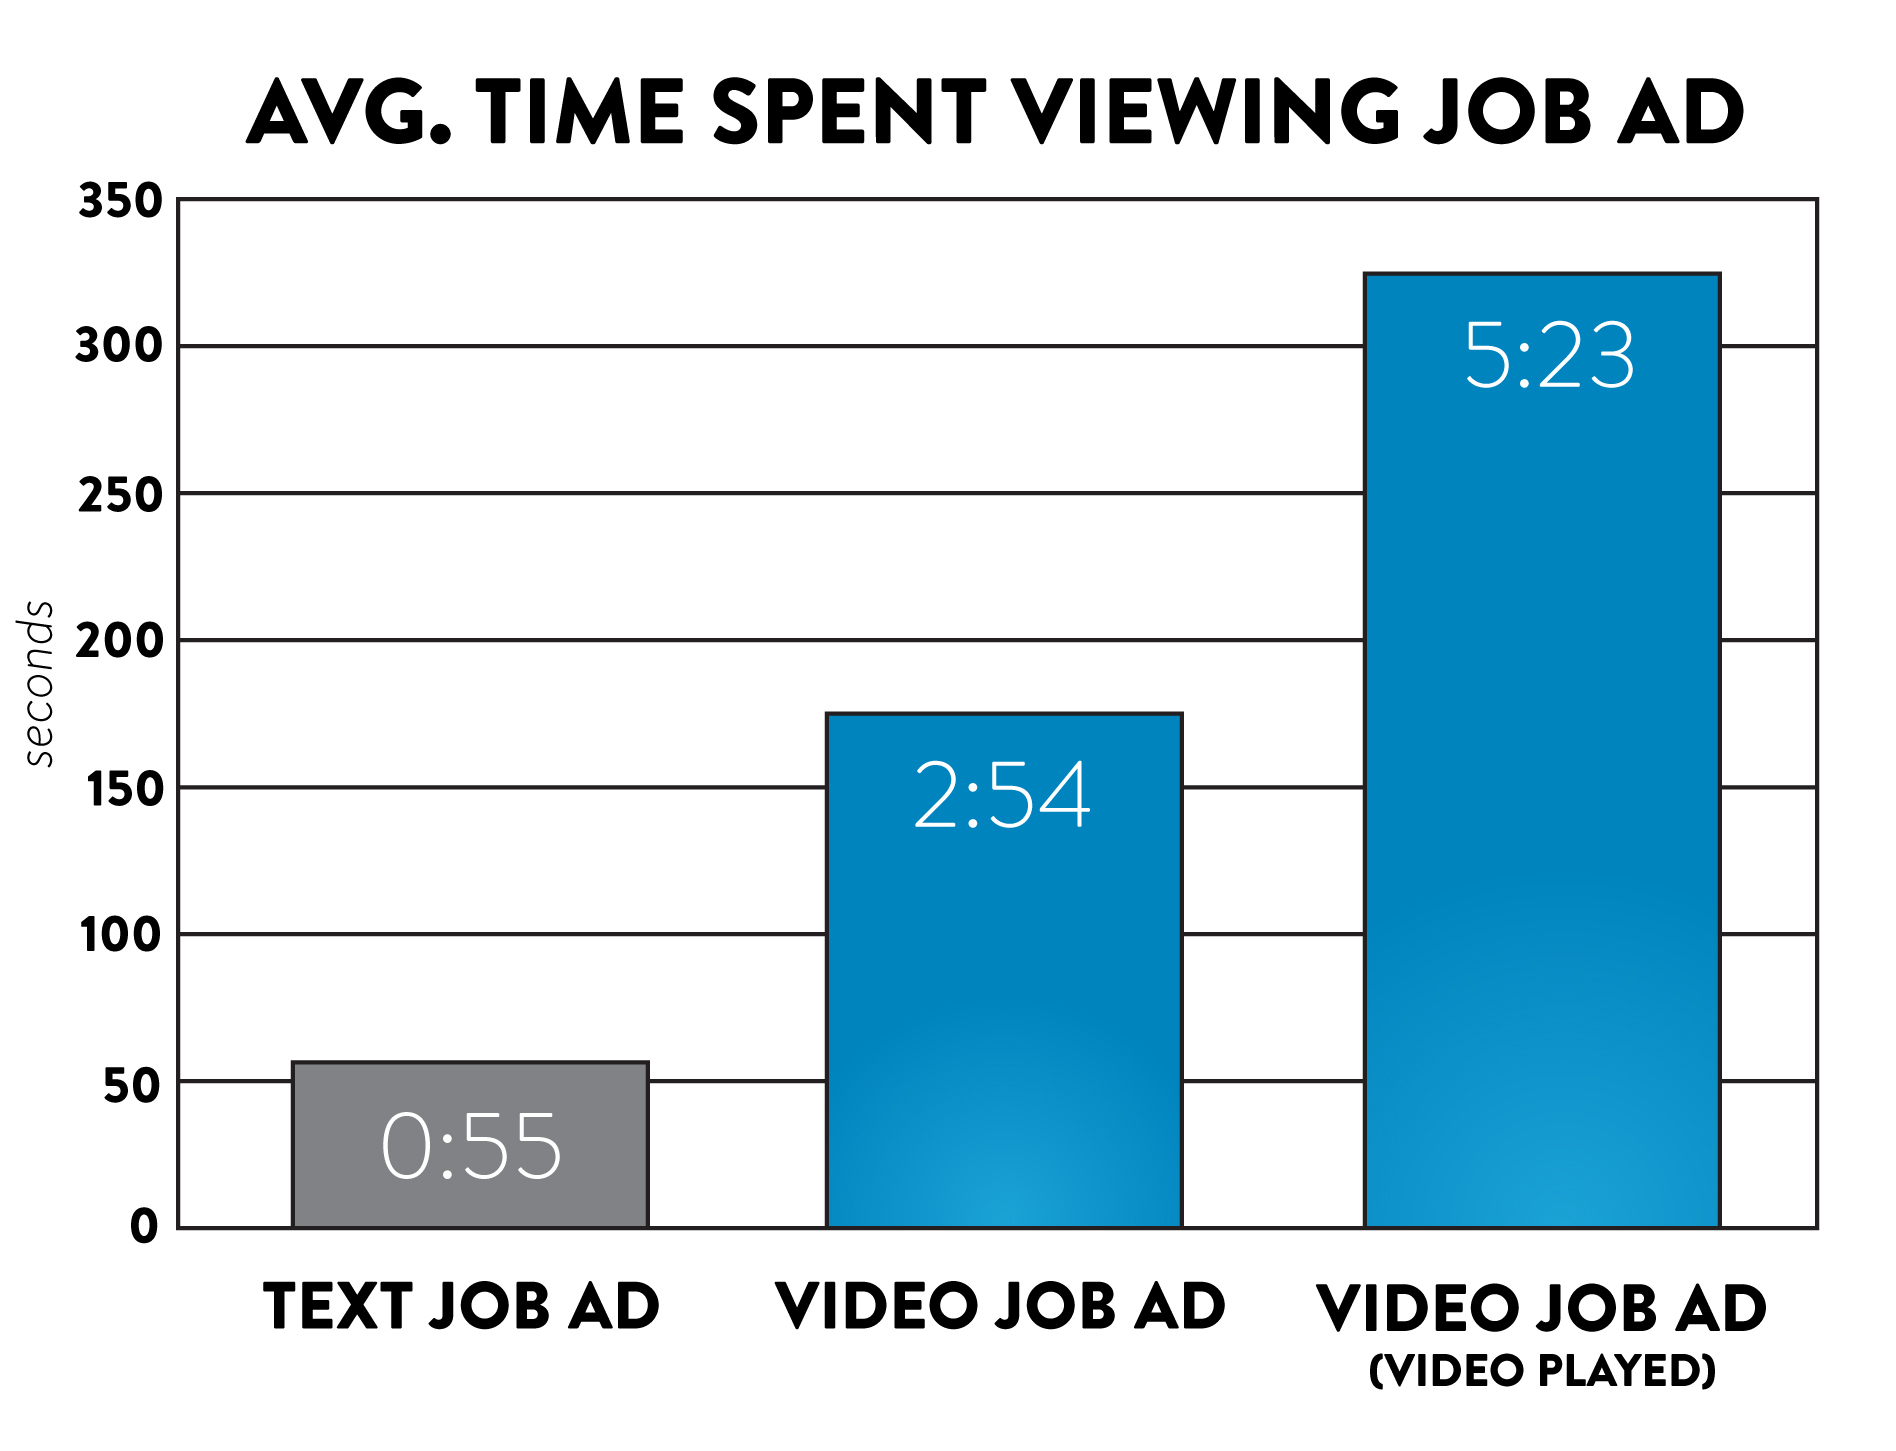 Video Job Ads